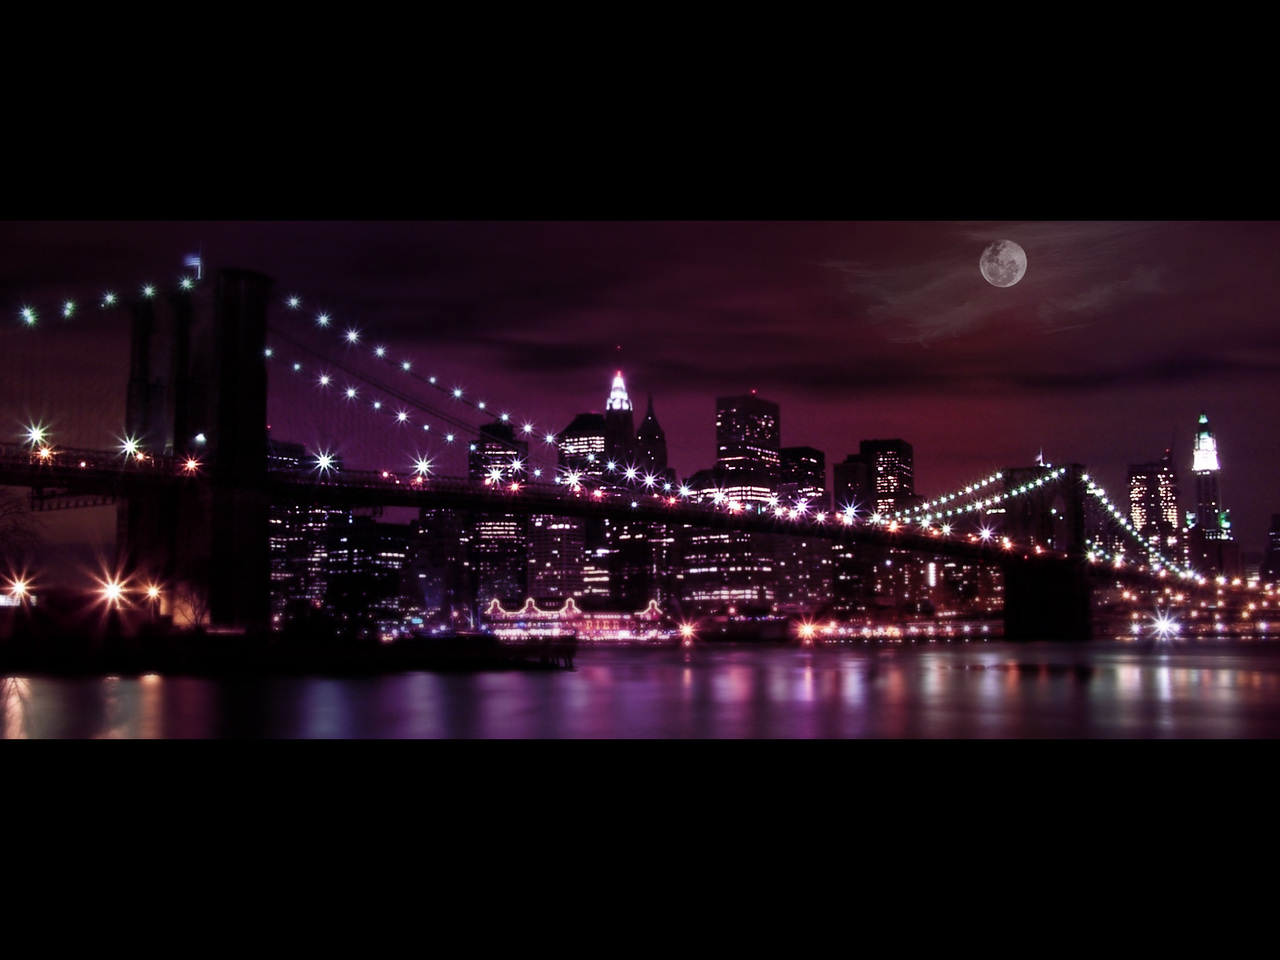 City Lights 16555 Hd Wallpapers in Movies   Imagescicom 1280x960